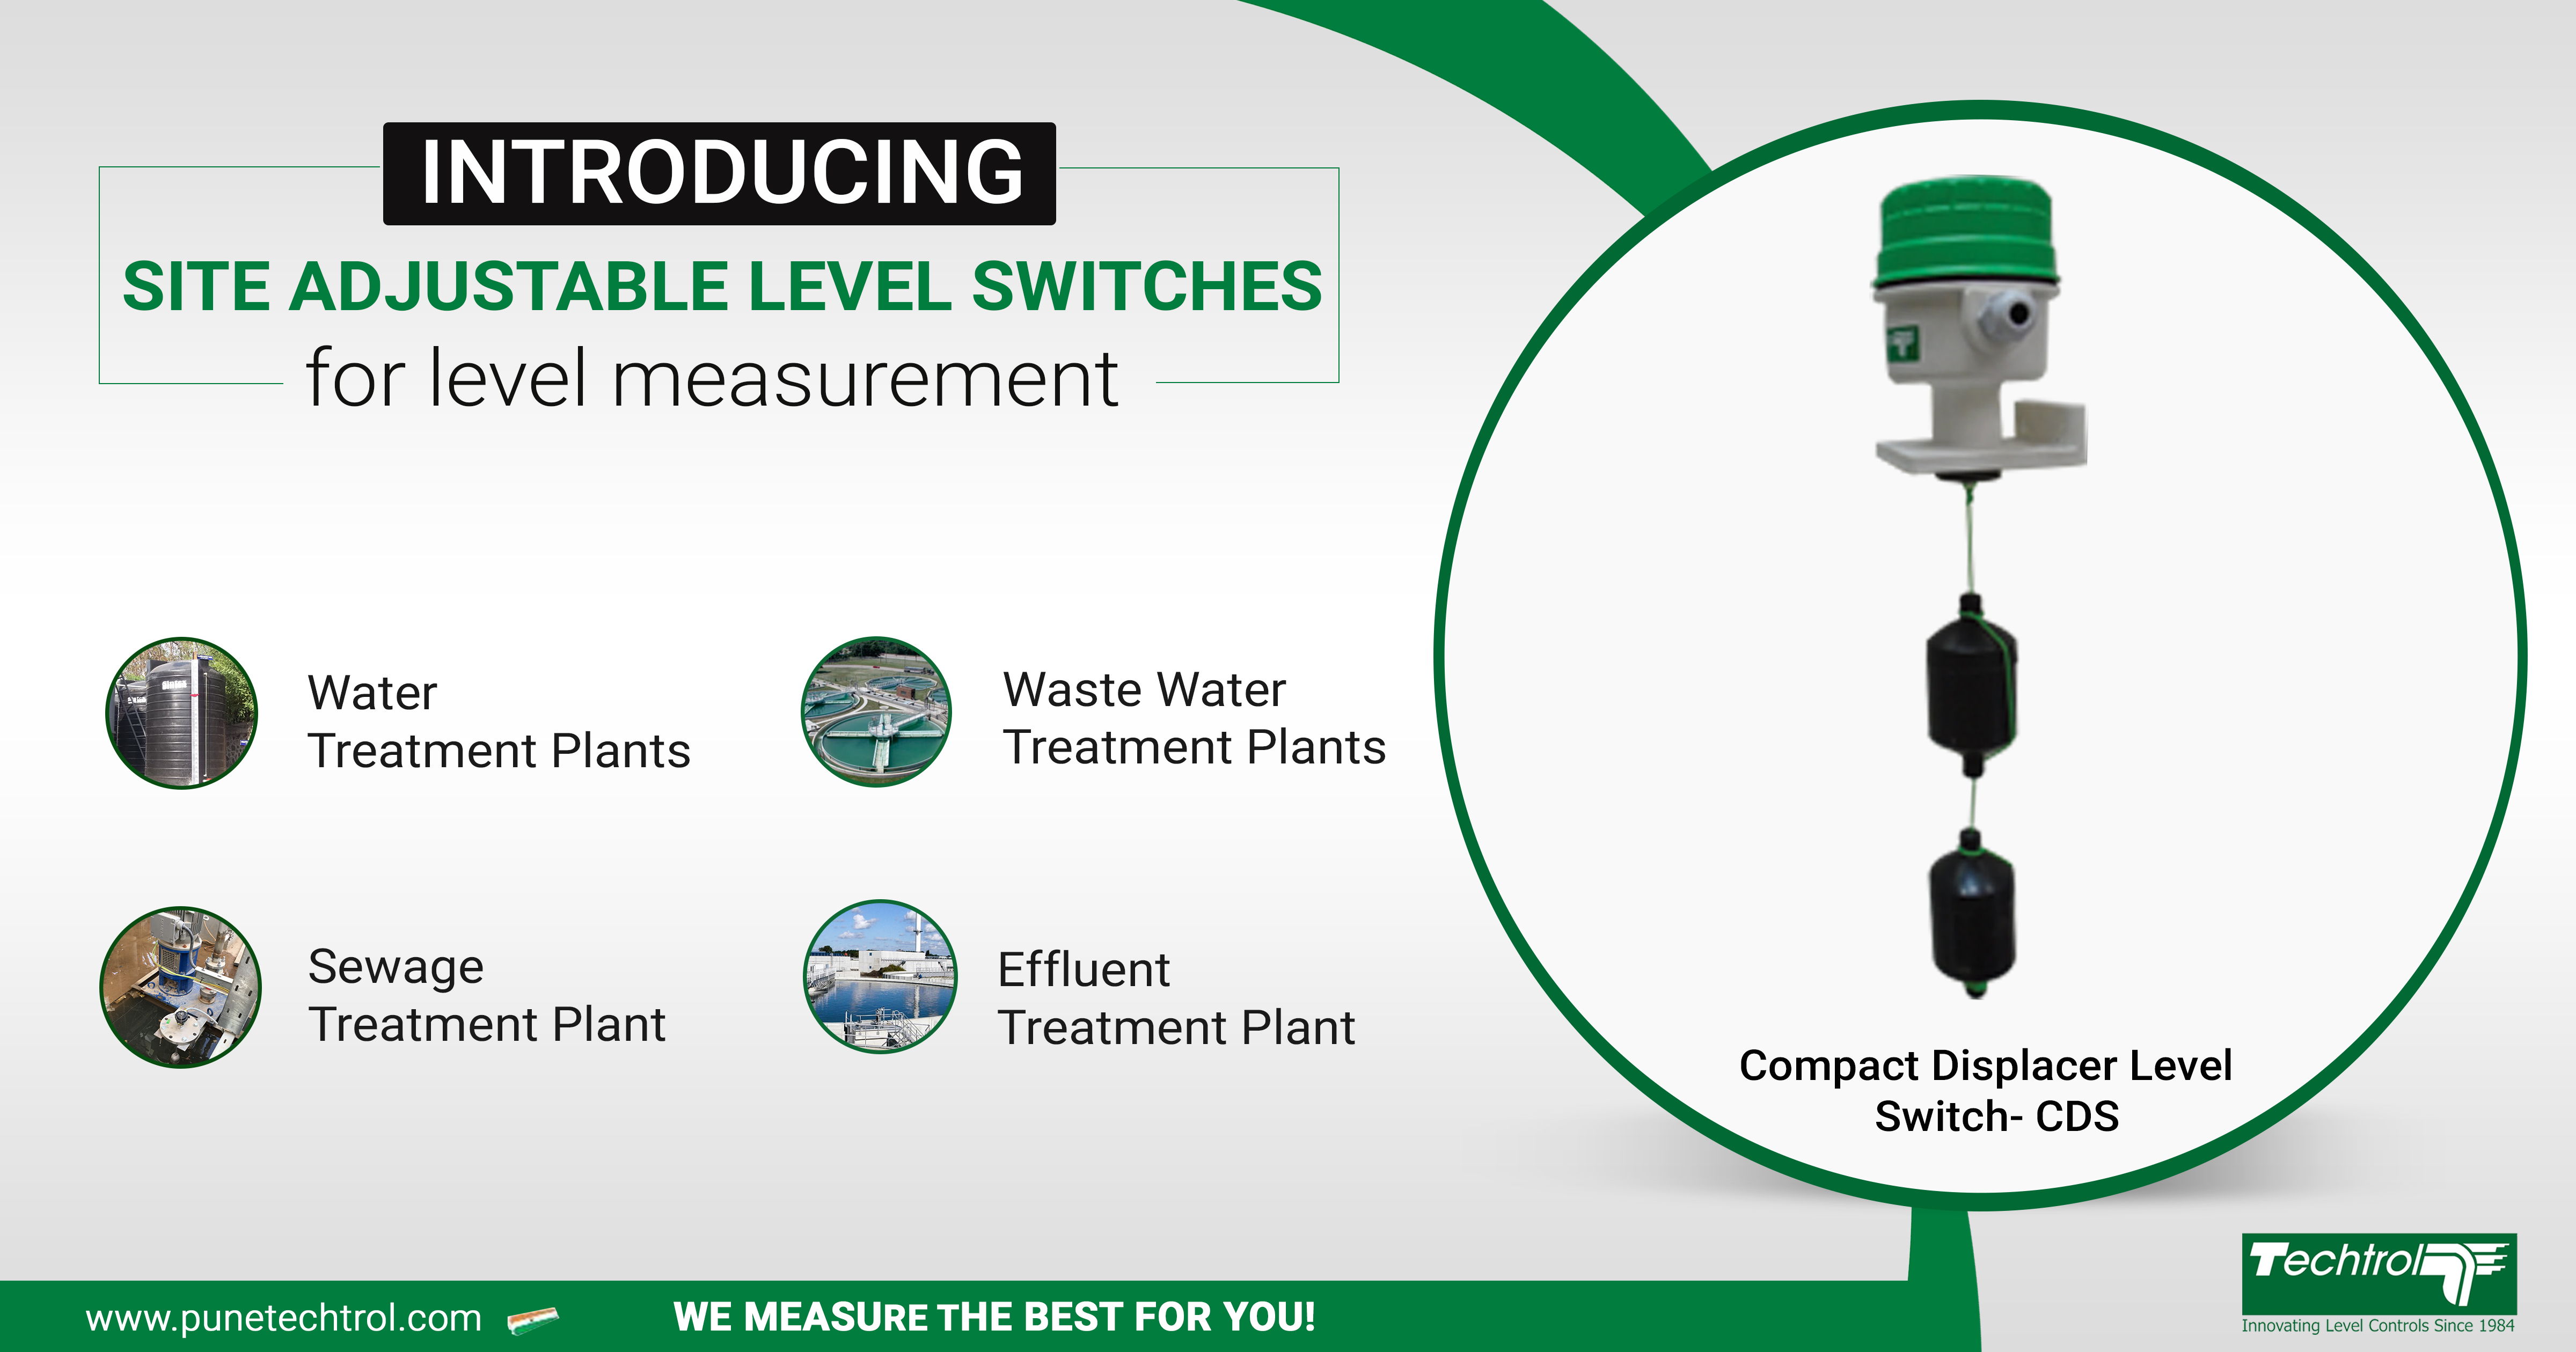 Techtrol launches Compact Displacer Level Switch for Level Detection in Waste Water Treatment Plant